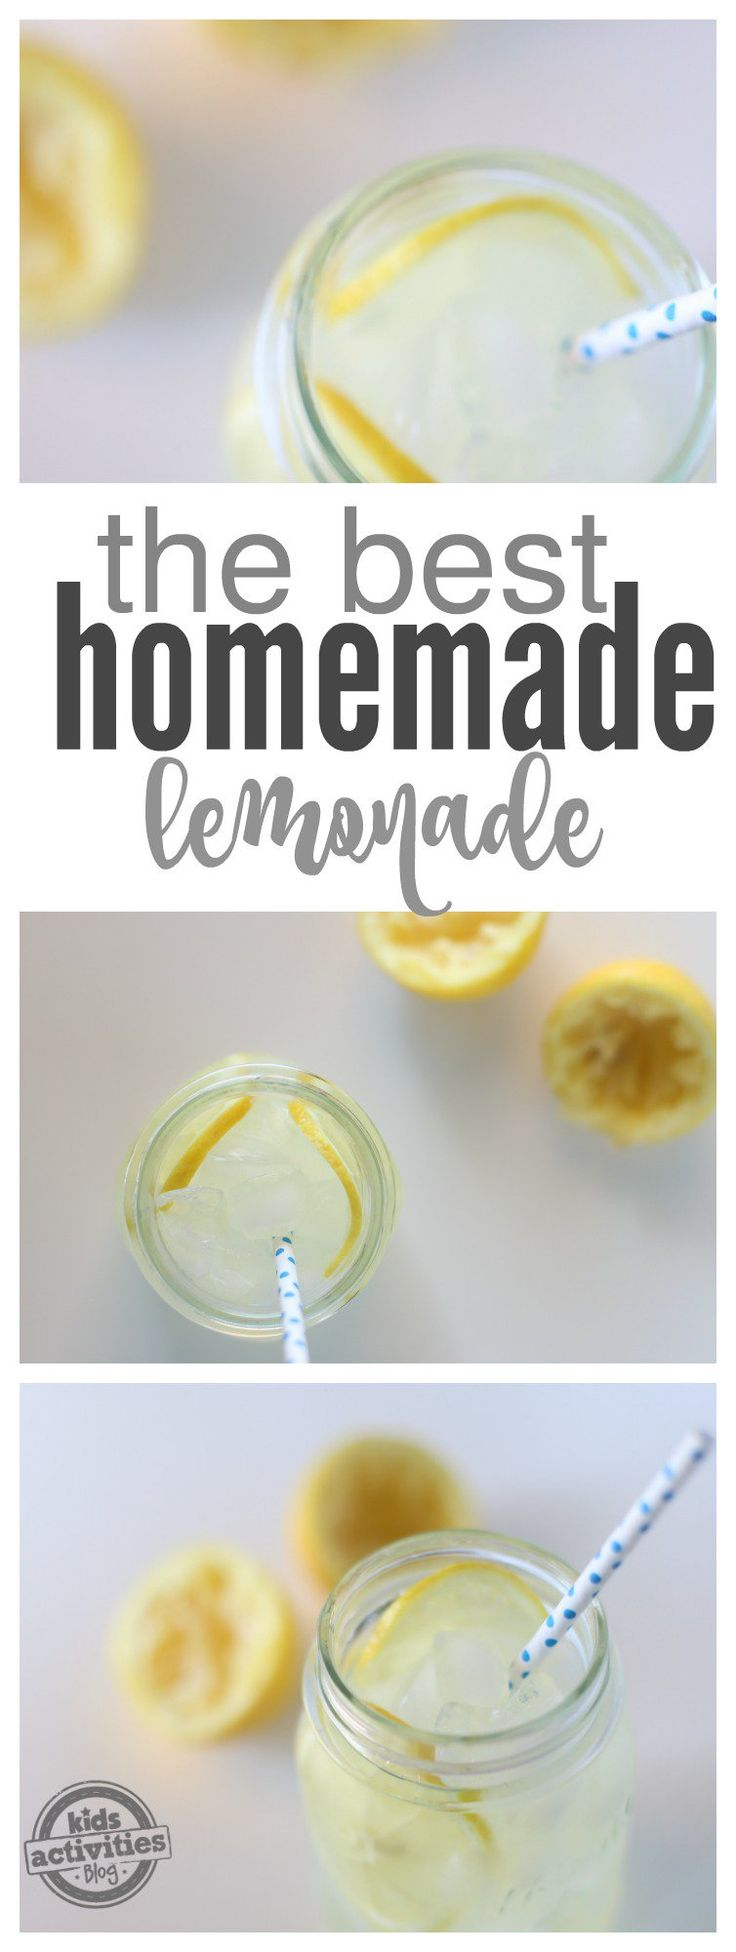 Summer is here and it's time to start thinking about delicious and refreshing drink recipes to make for friends, family and of course yourself! My kids love this recipe because it's the best homemade lemonade recipe that you'll ever make! Remember if you love strawberries to try our Strawberry Lemonade recipe too, it's just a different version of refreshing deliciousness! There's just something about a good lemonade that's refreshing and reminds you of the sunny days o...